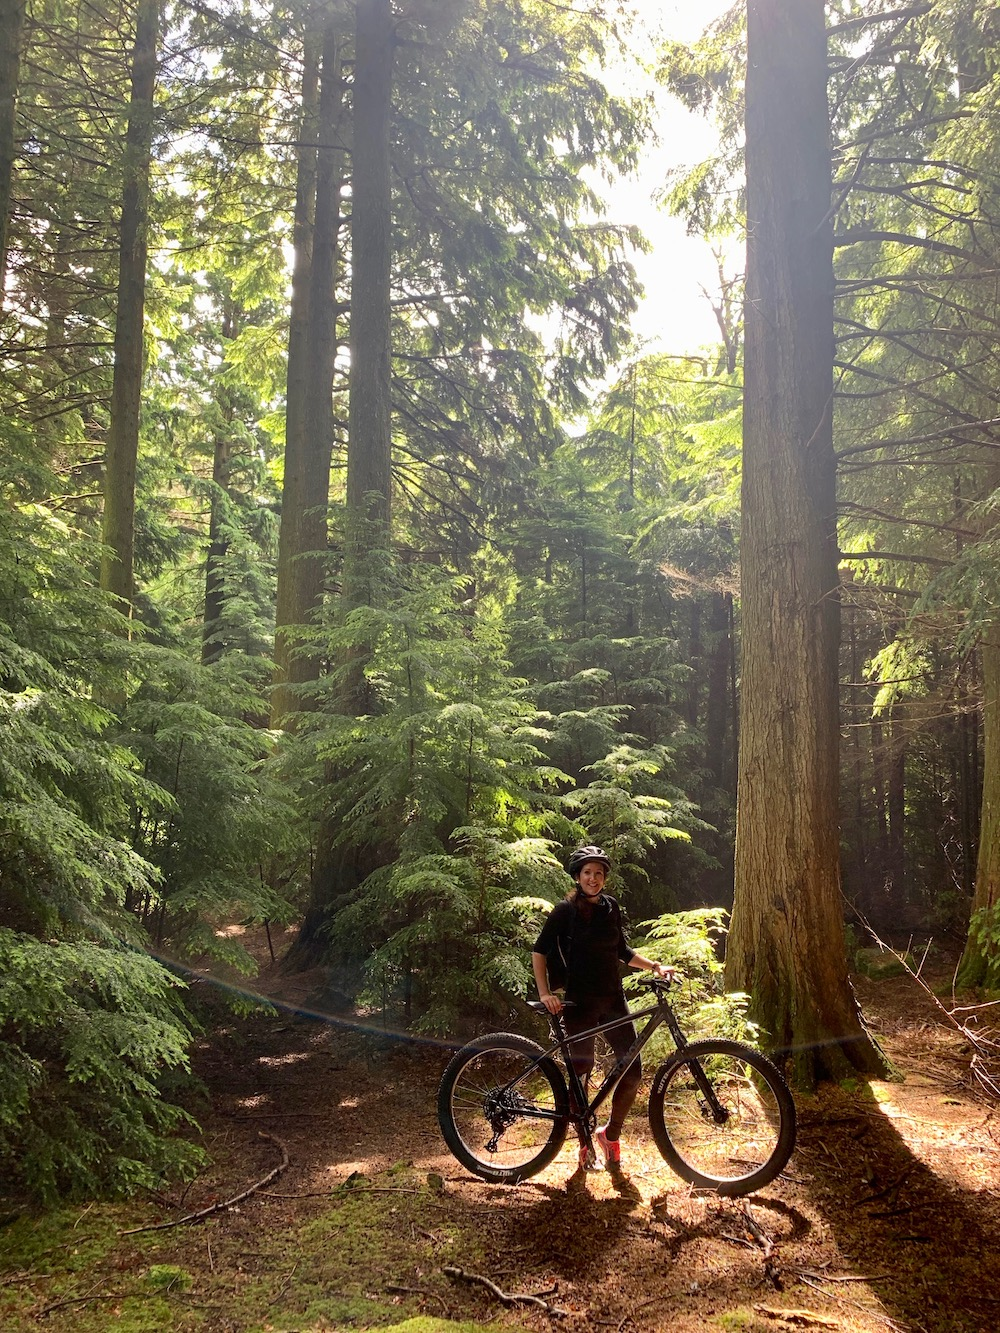 An introduction to bikepacking in North Wales